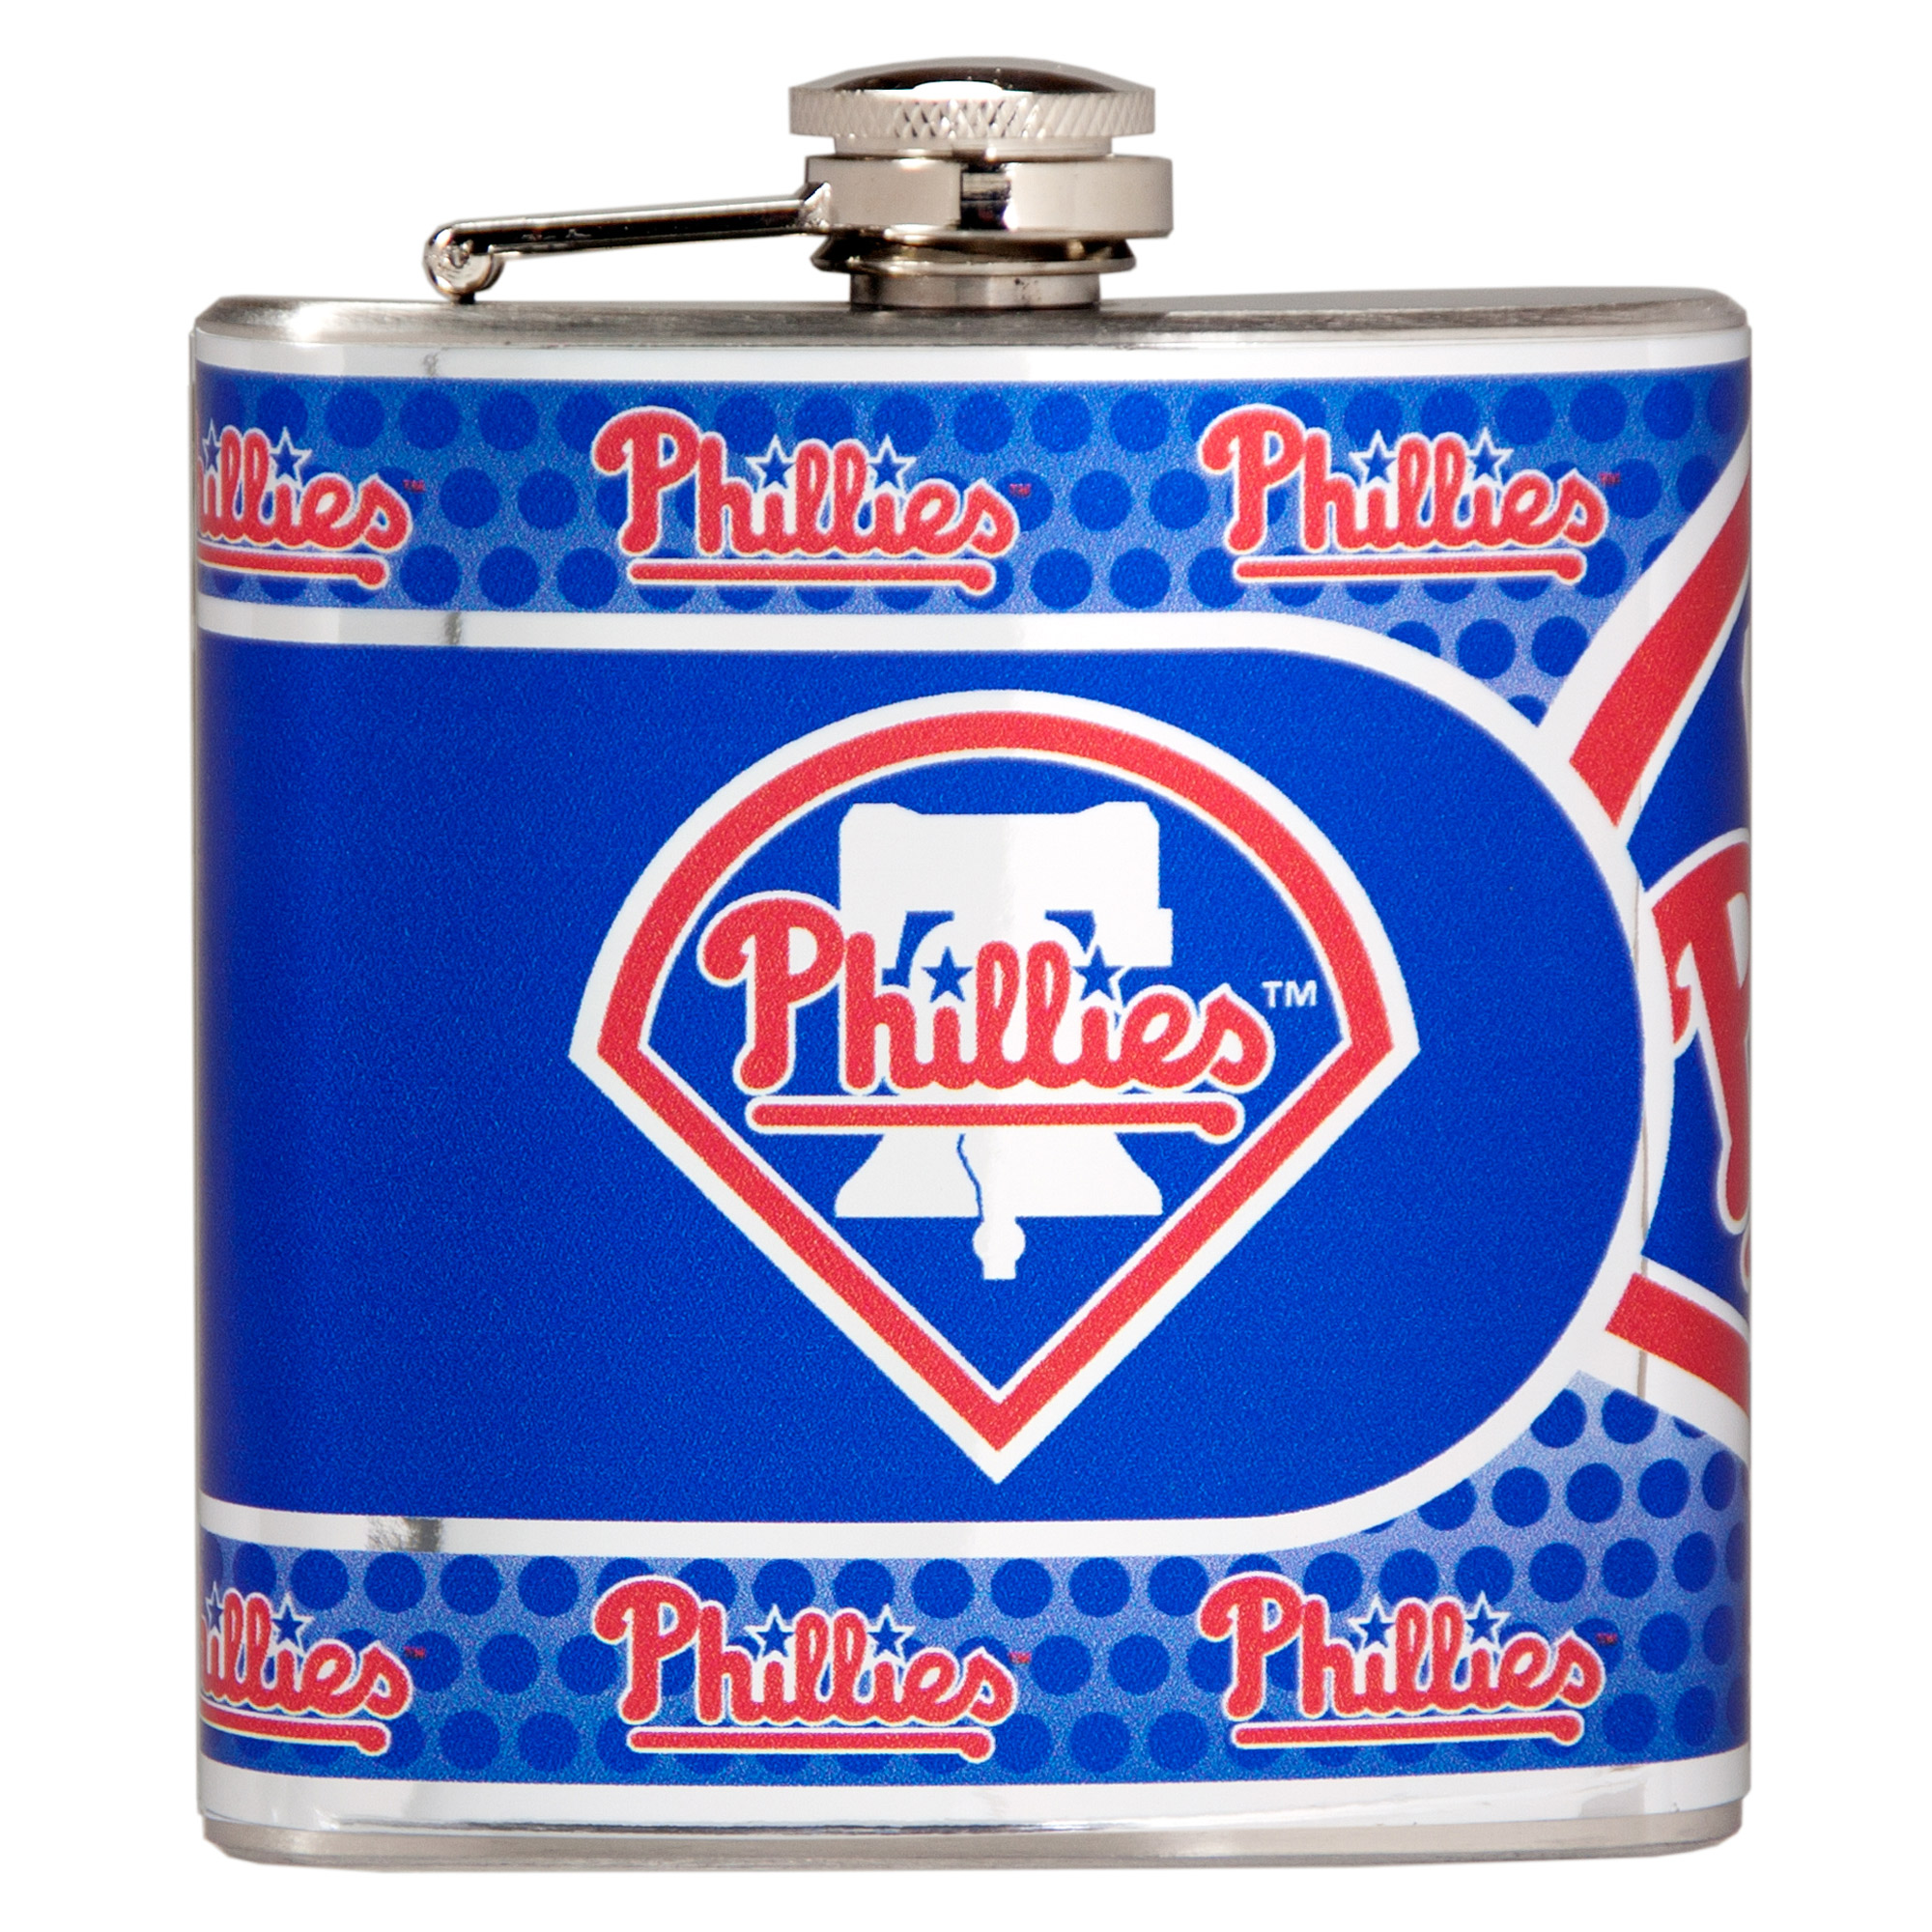 Philadelphia Phillies 6oz. Stainless Steel Hip Flask - Silver - No Size